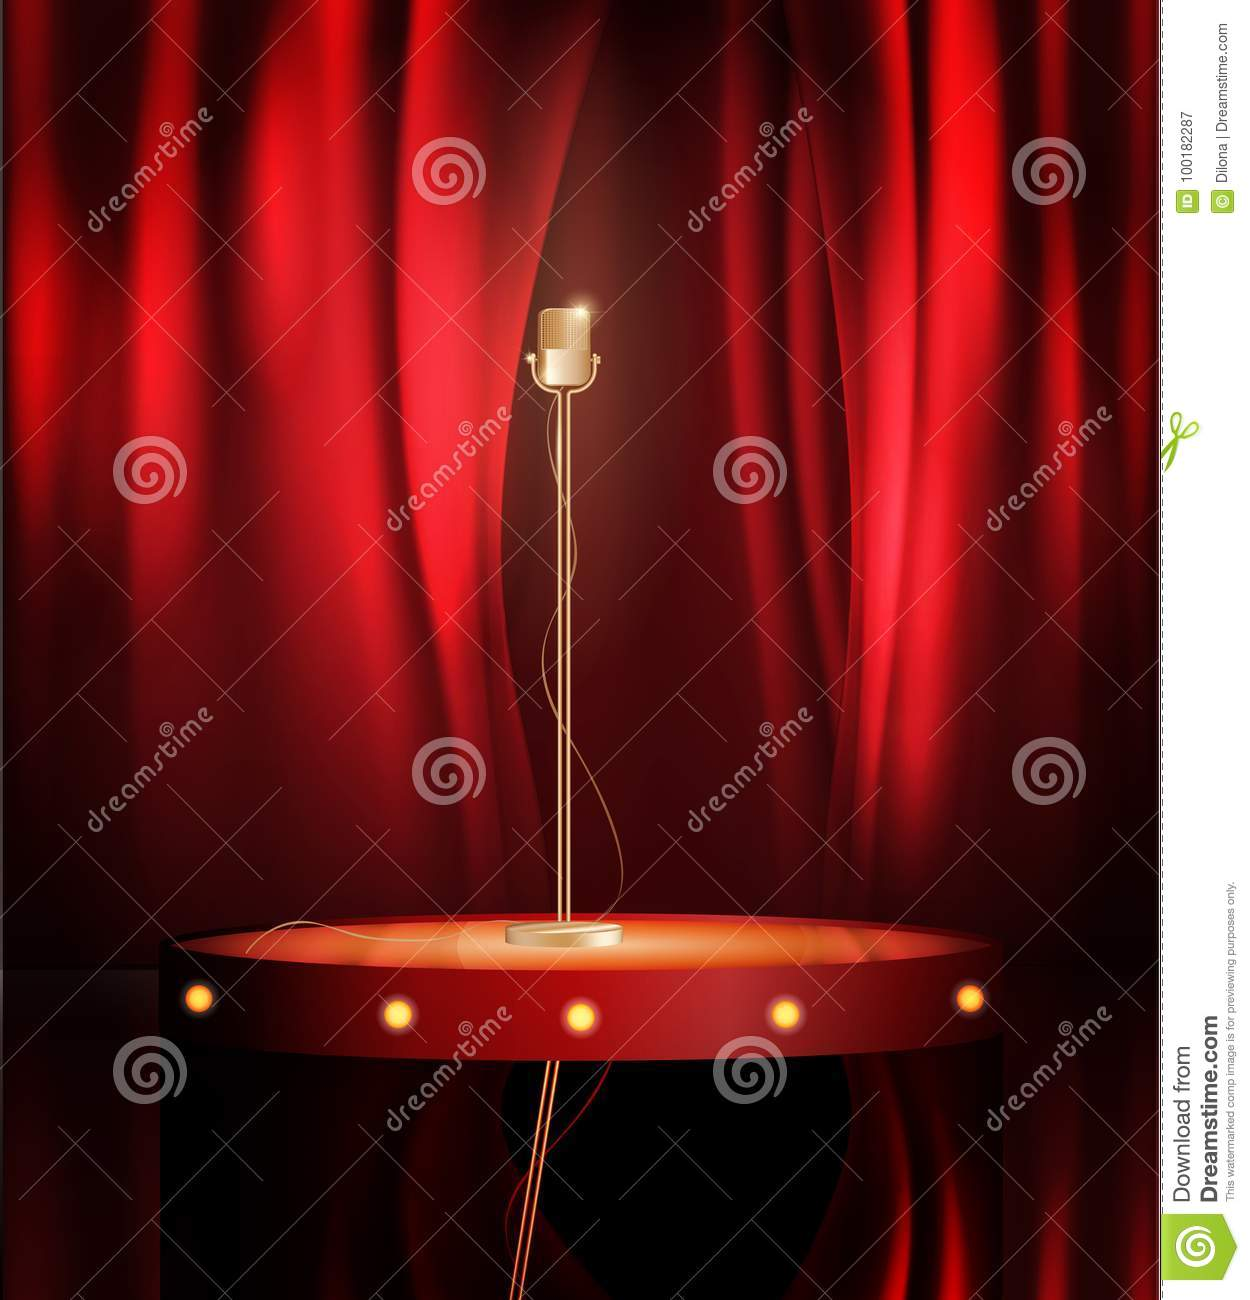 Download Vintage Metal Microphone On Stage With Red Curtain Backdrop Mic Empty Theatre